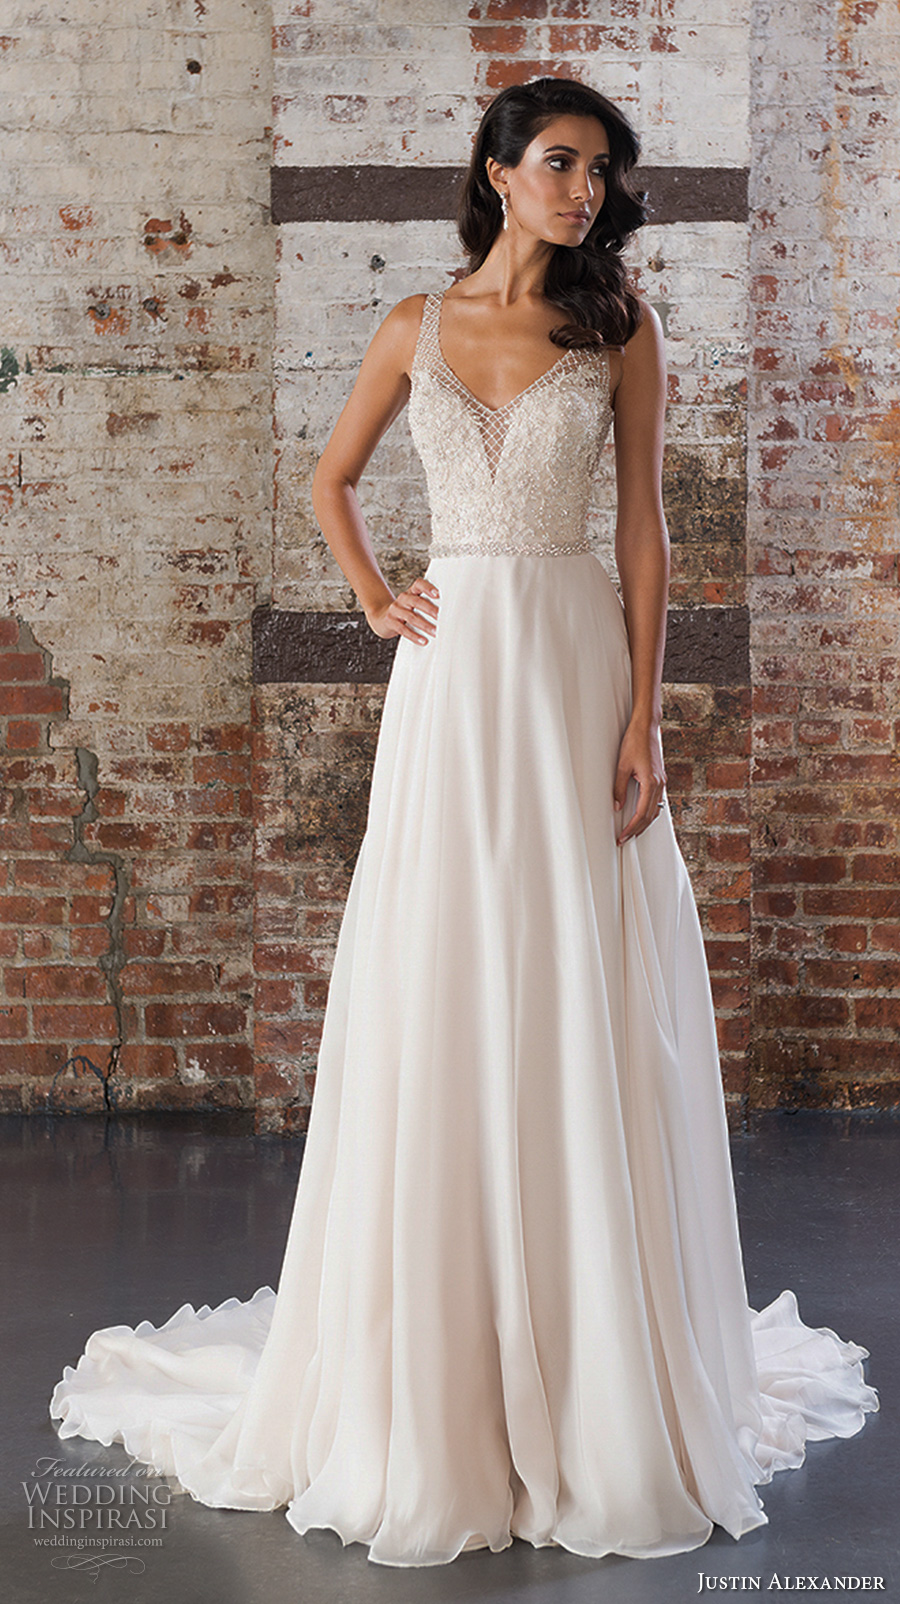 justin alexander spring 2017 bridal sleeveless v neck heavily embellished bodice flowy skirt romantic modified a line wedding dress v back chapel train (9849) mv